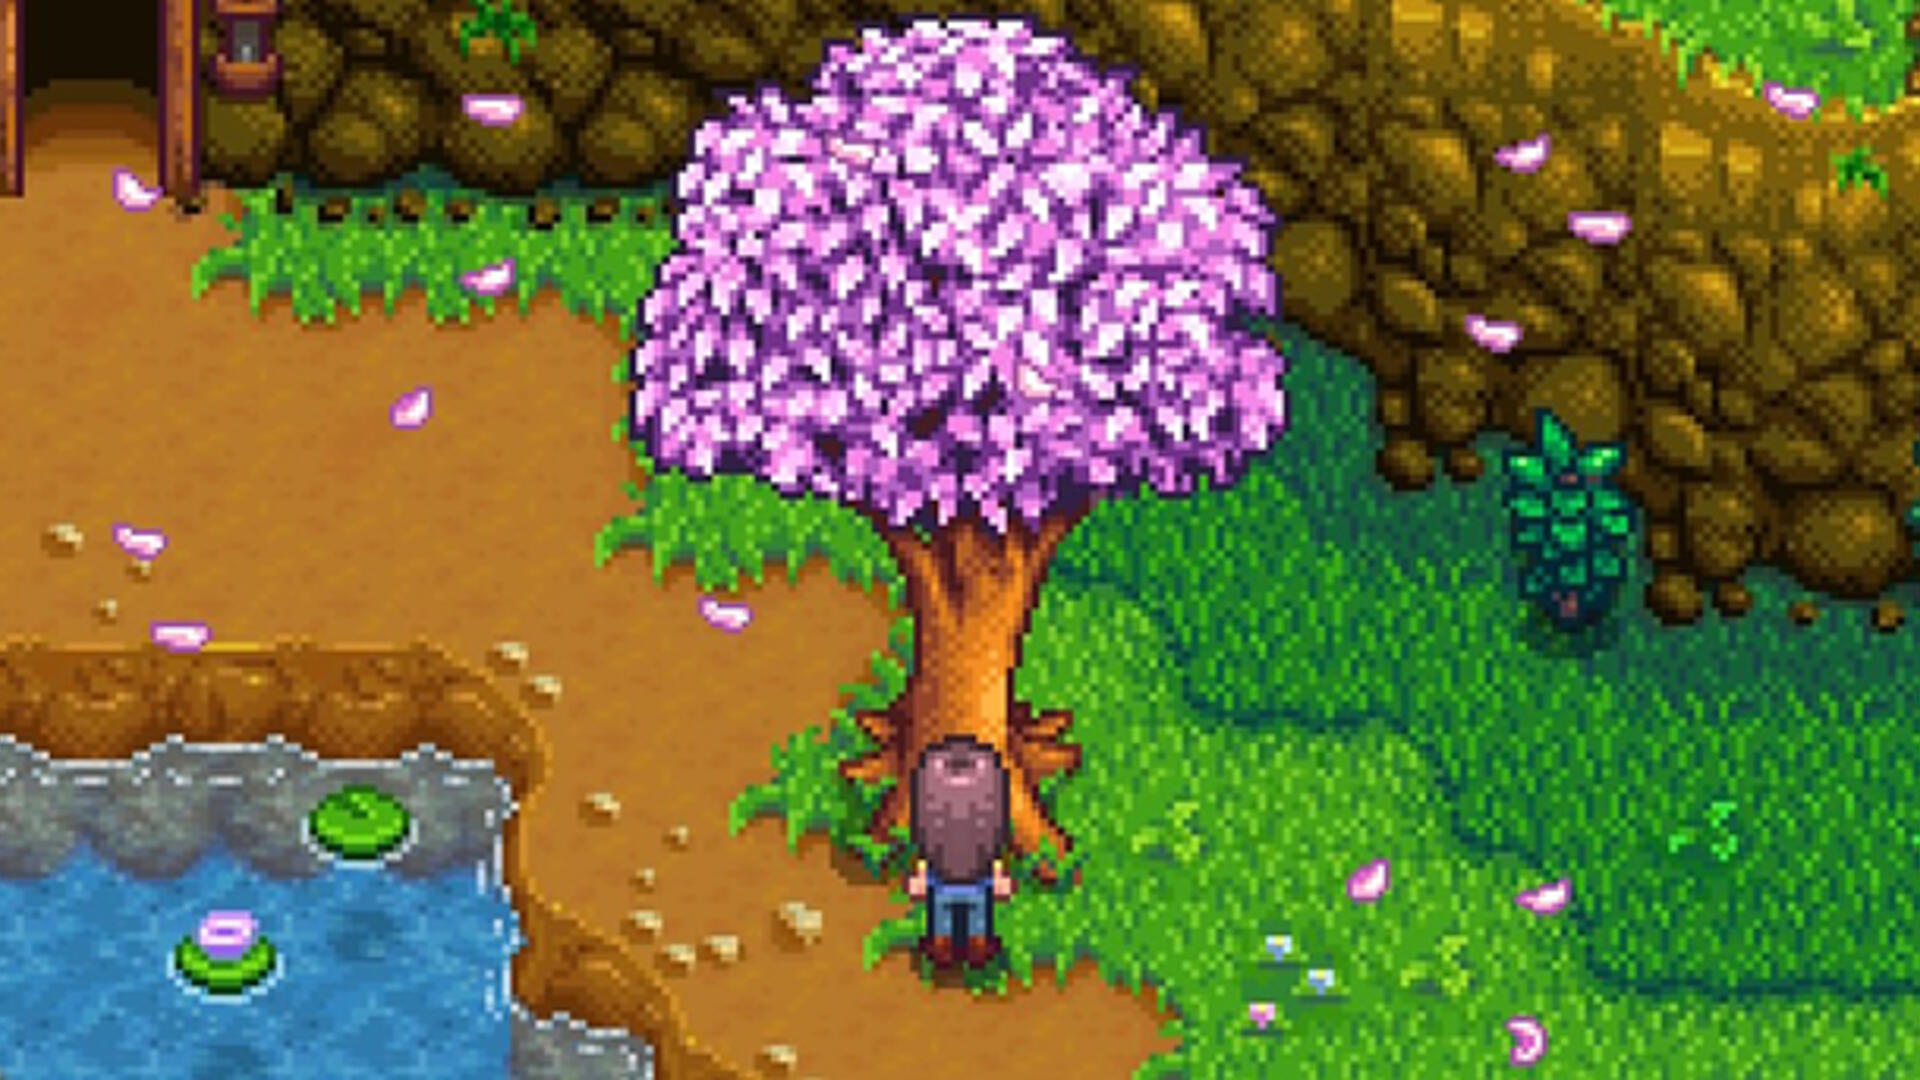 Stardew Valley for the Switch Gets its 1.3 Multiplayer Update